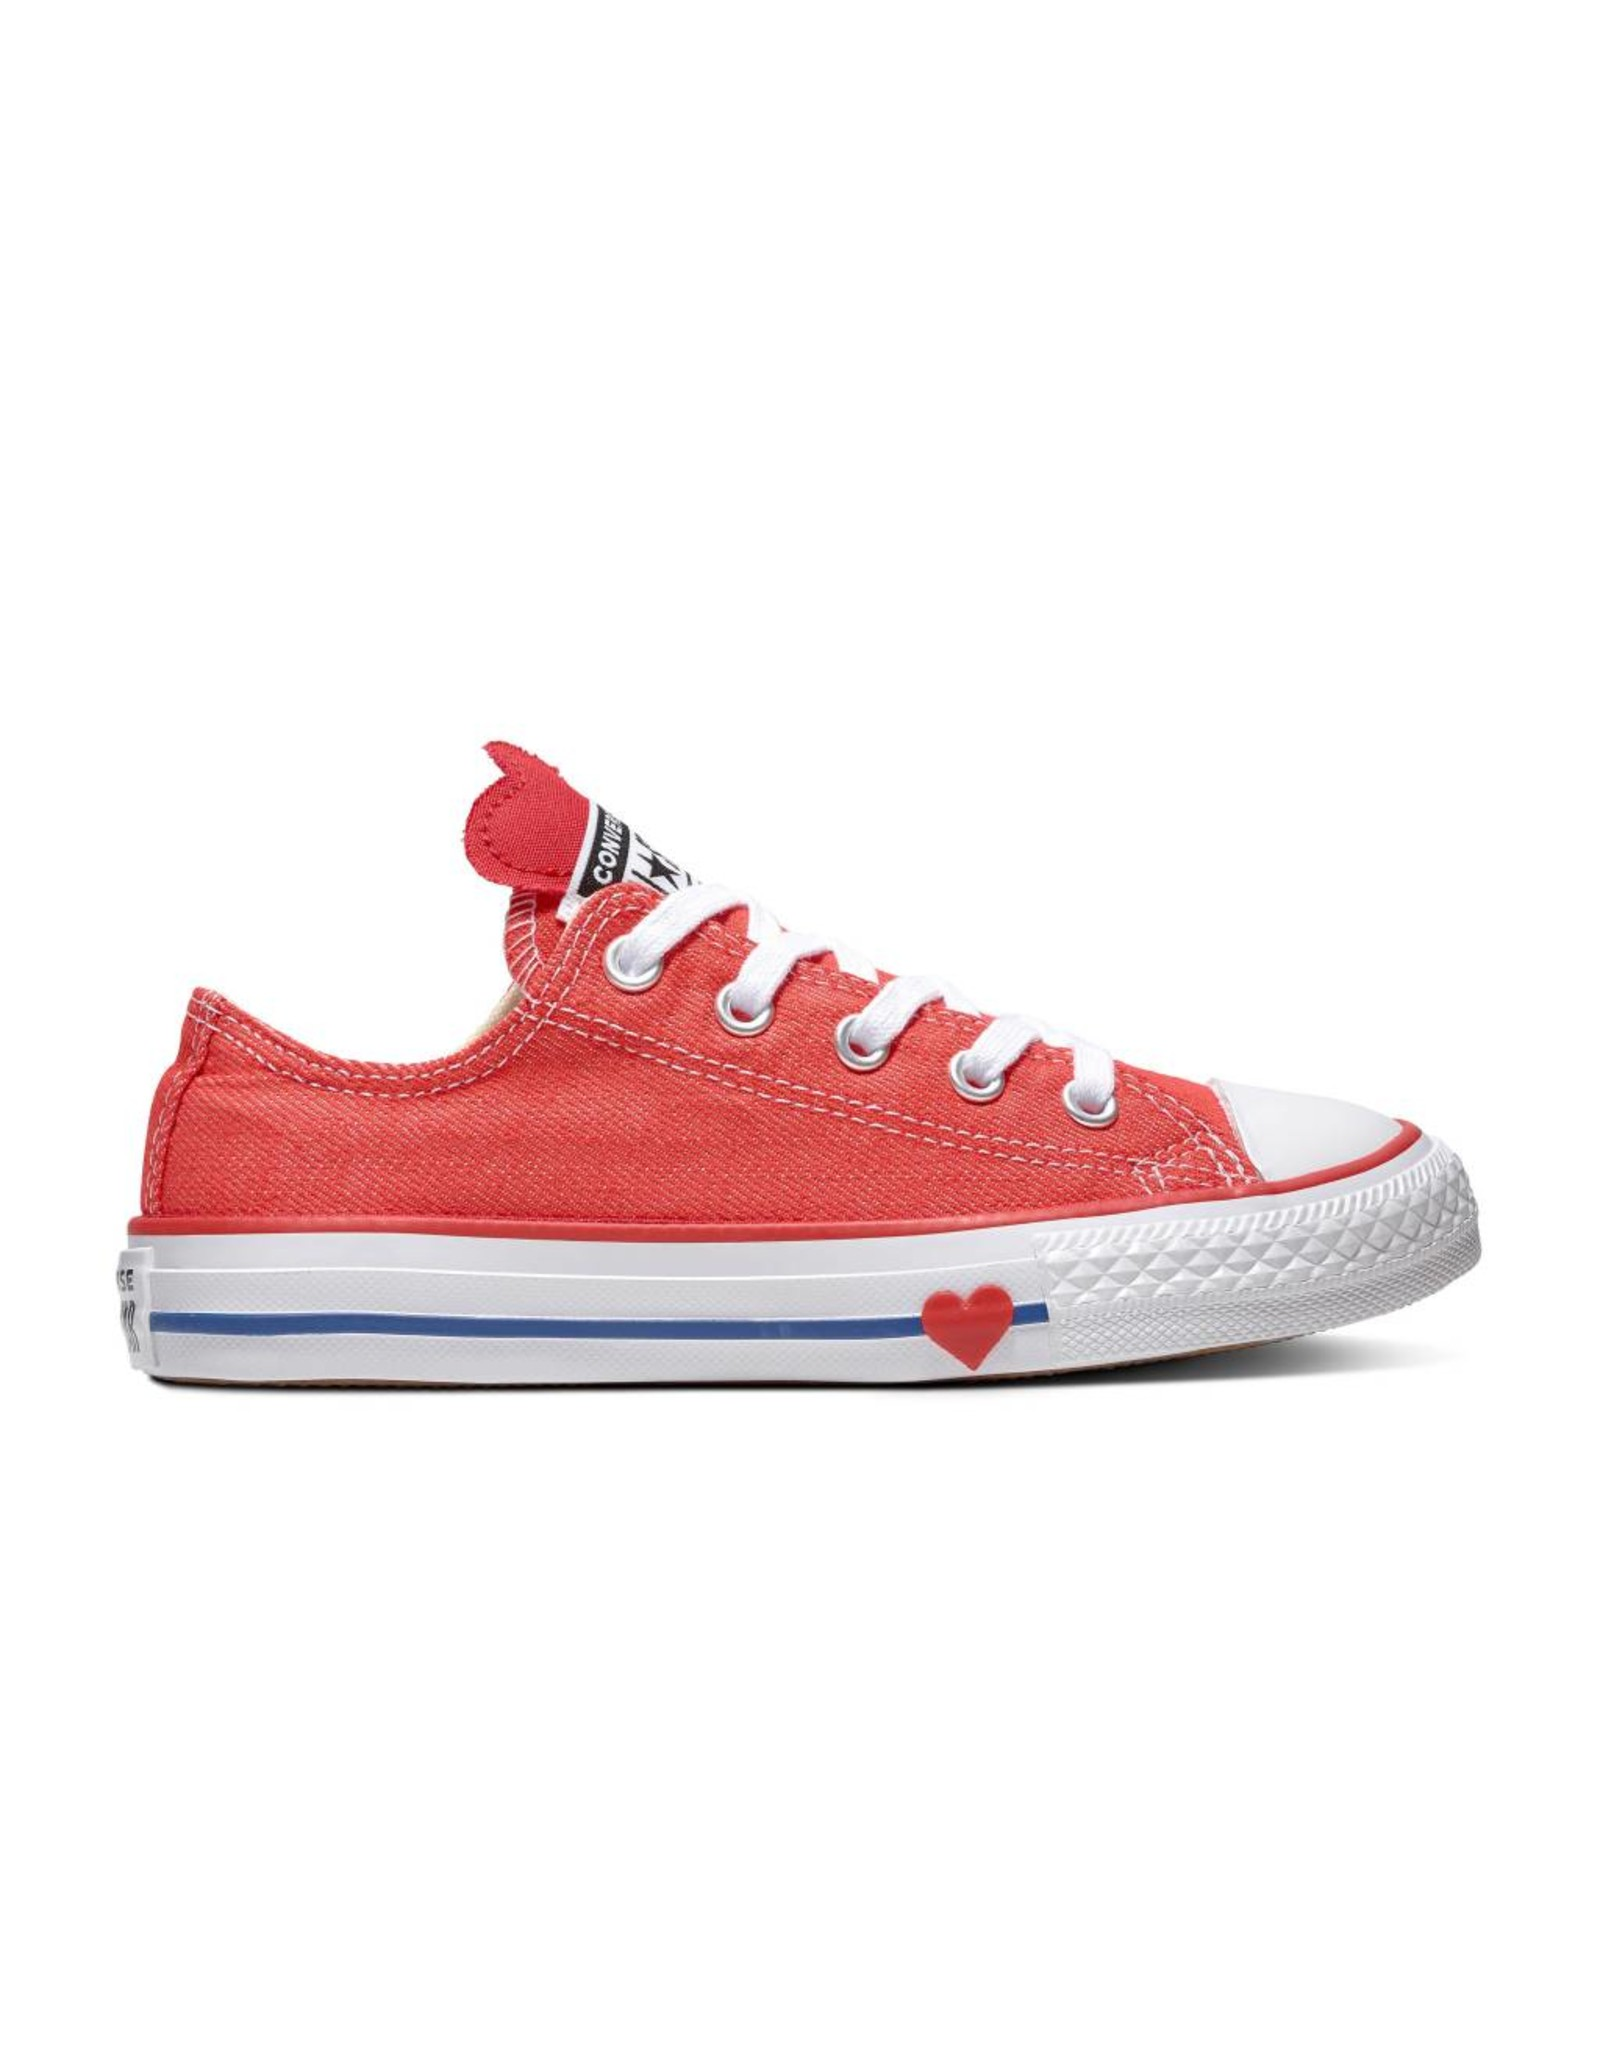 CONVERSE CHUCK TAYLOR ALL STAR OX SEDONA RED/ENAMEL RED/BLUE CZSER-363706C